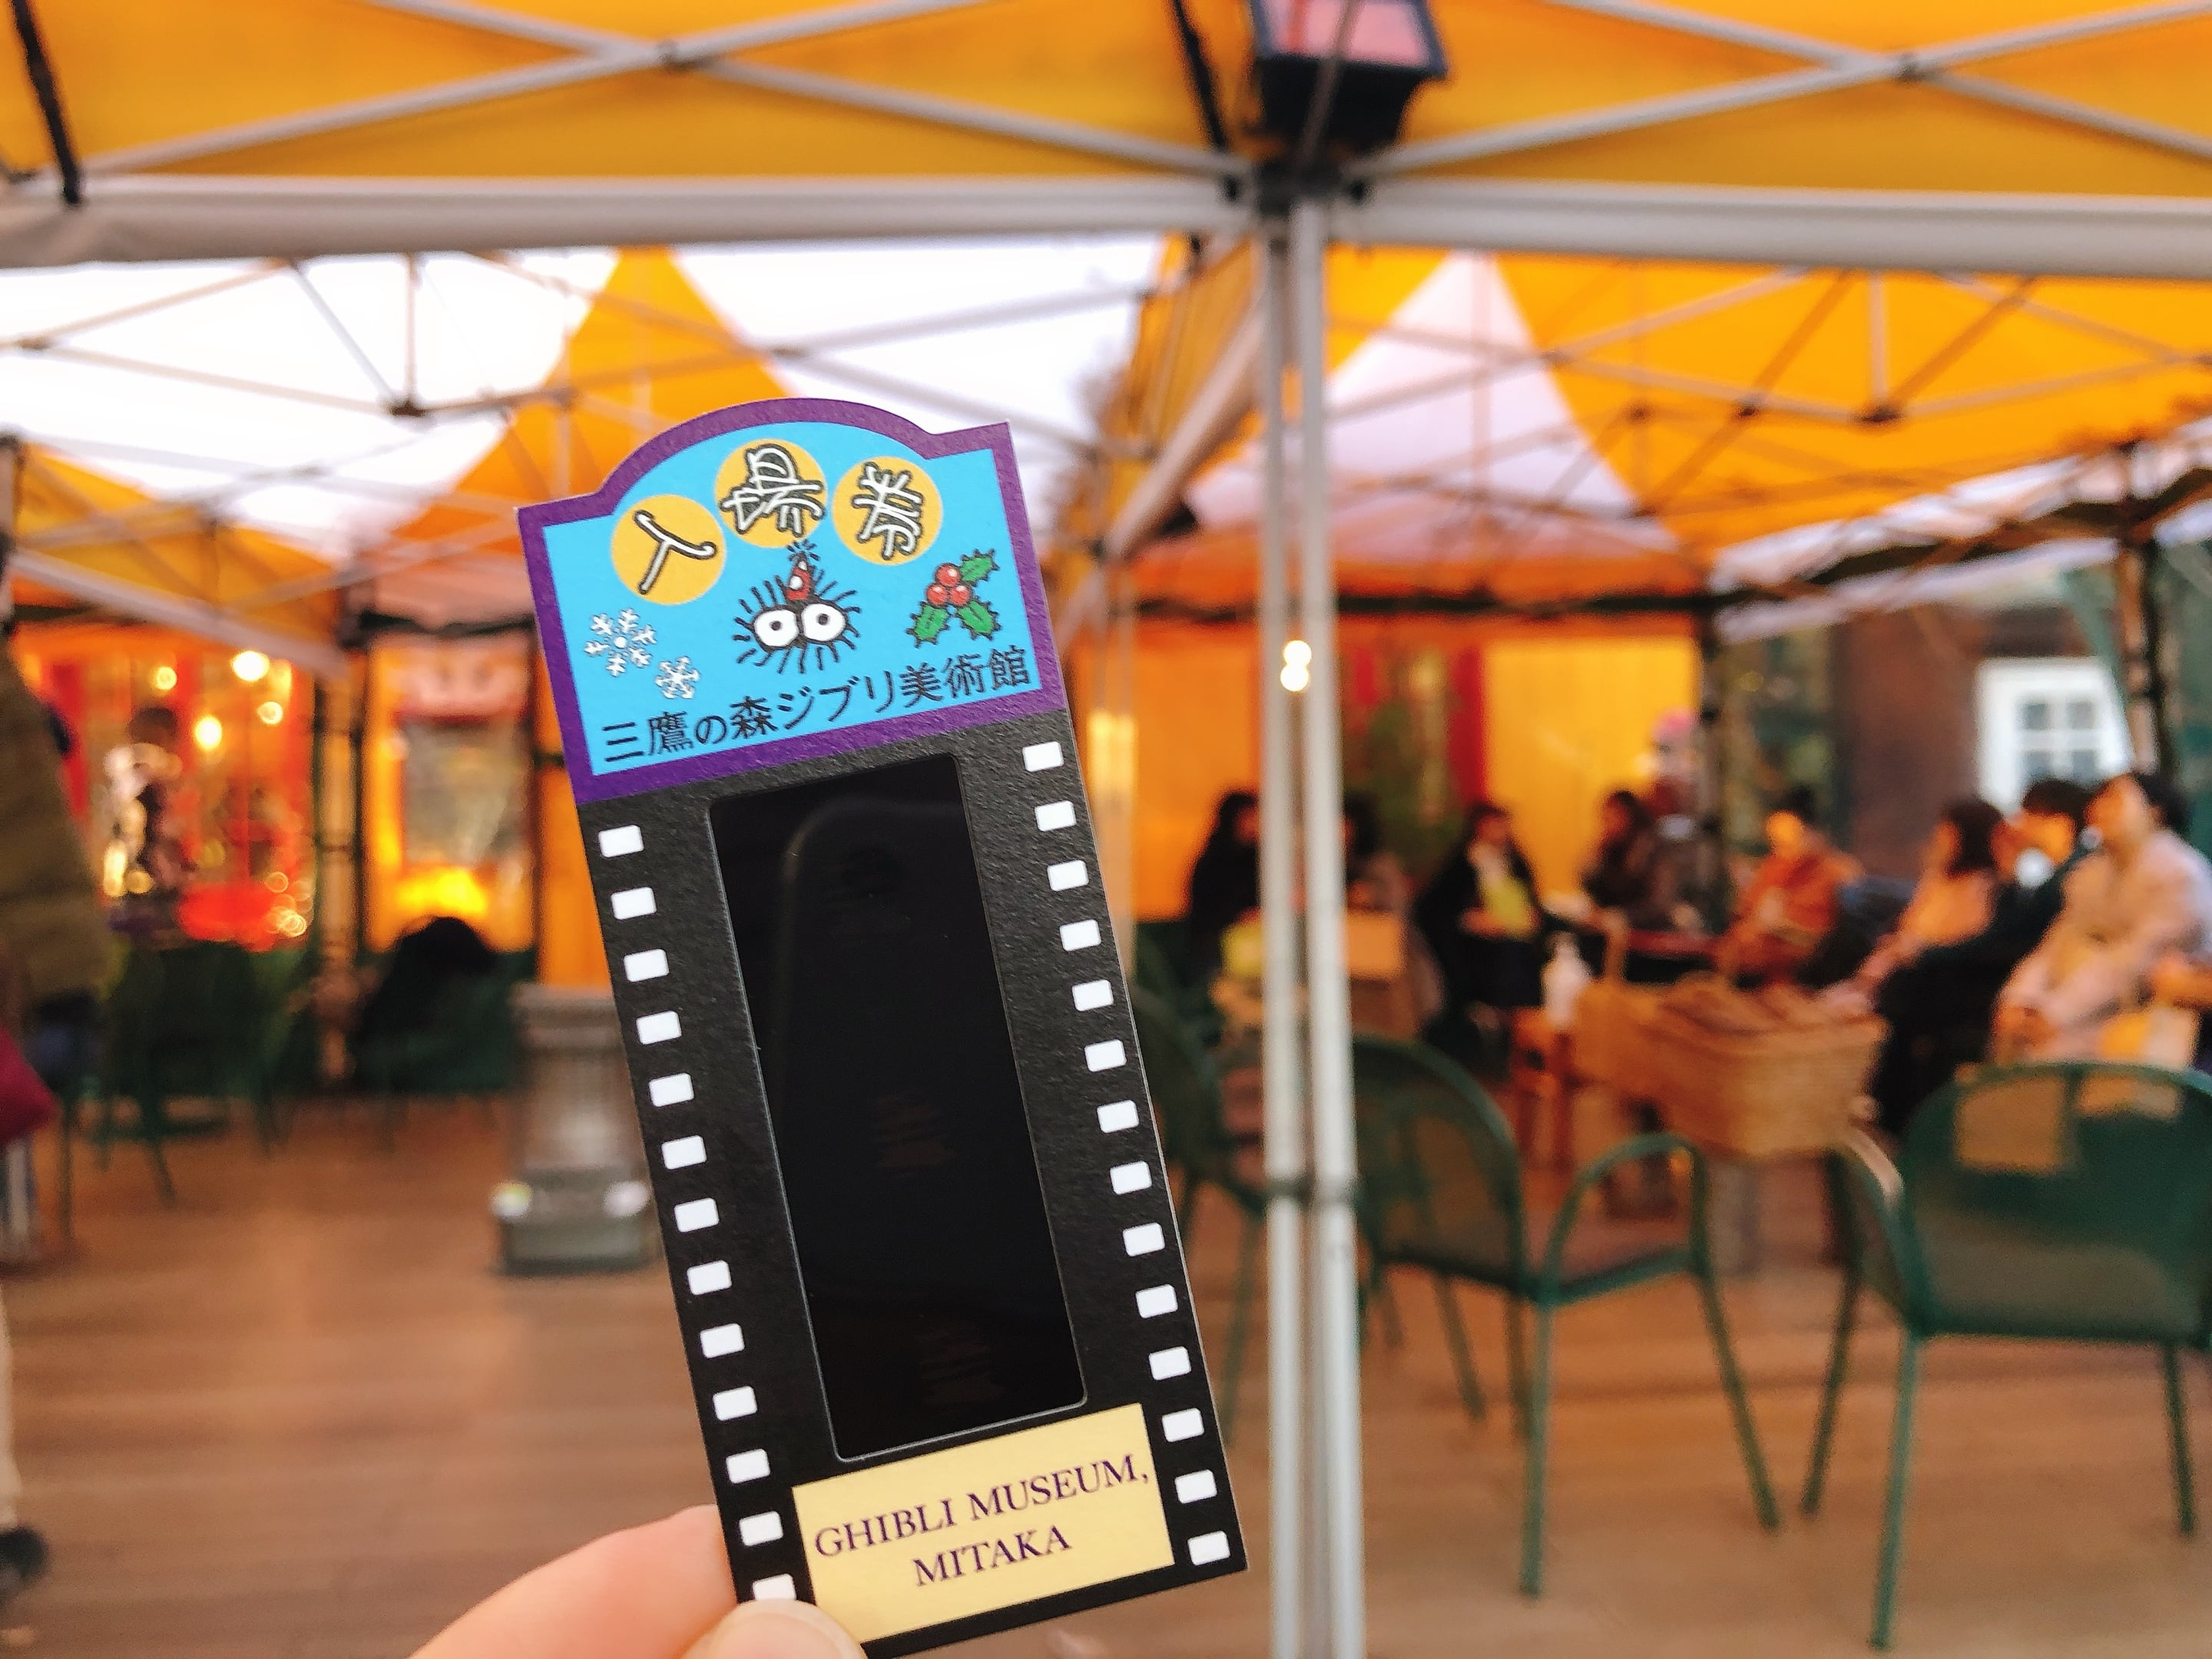 An admission ticket of Ghibli Museum with the animation film